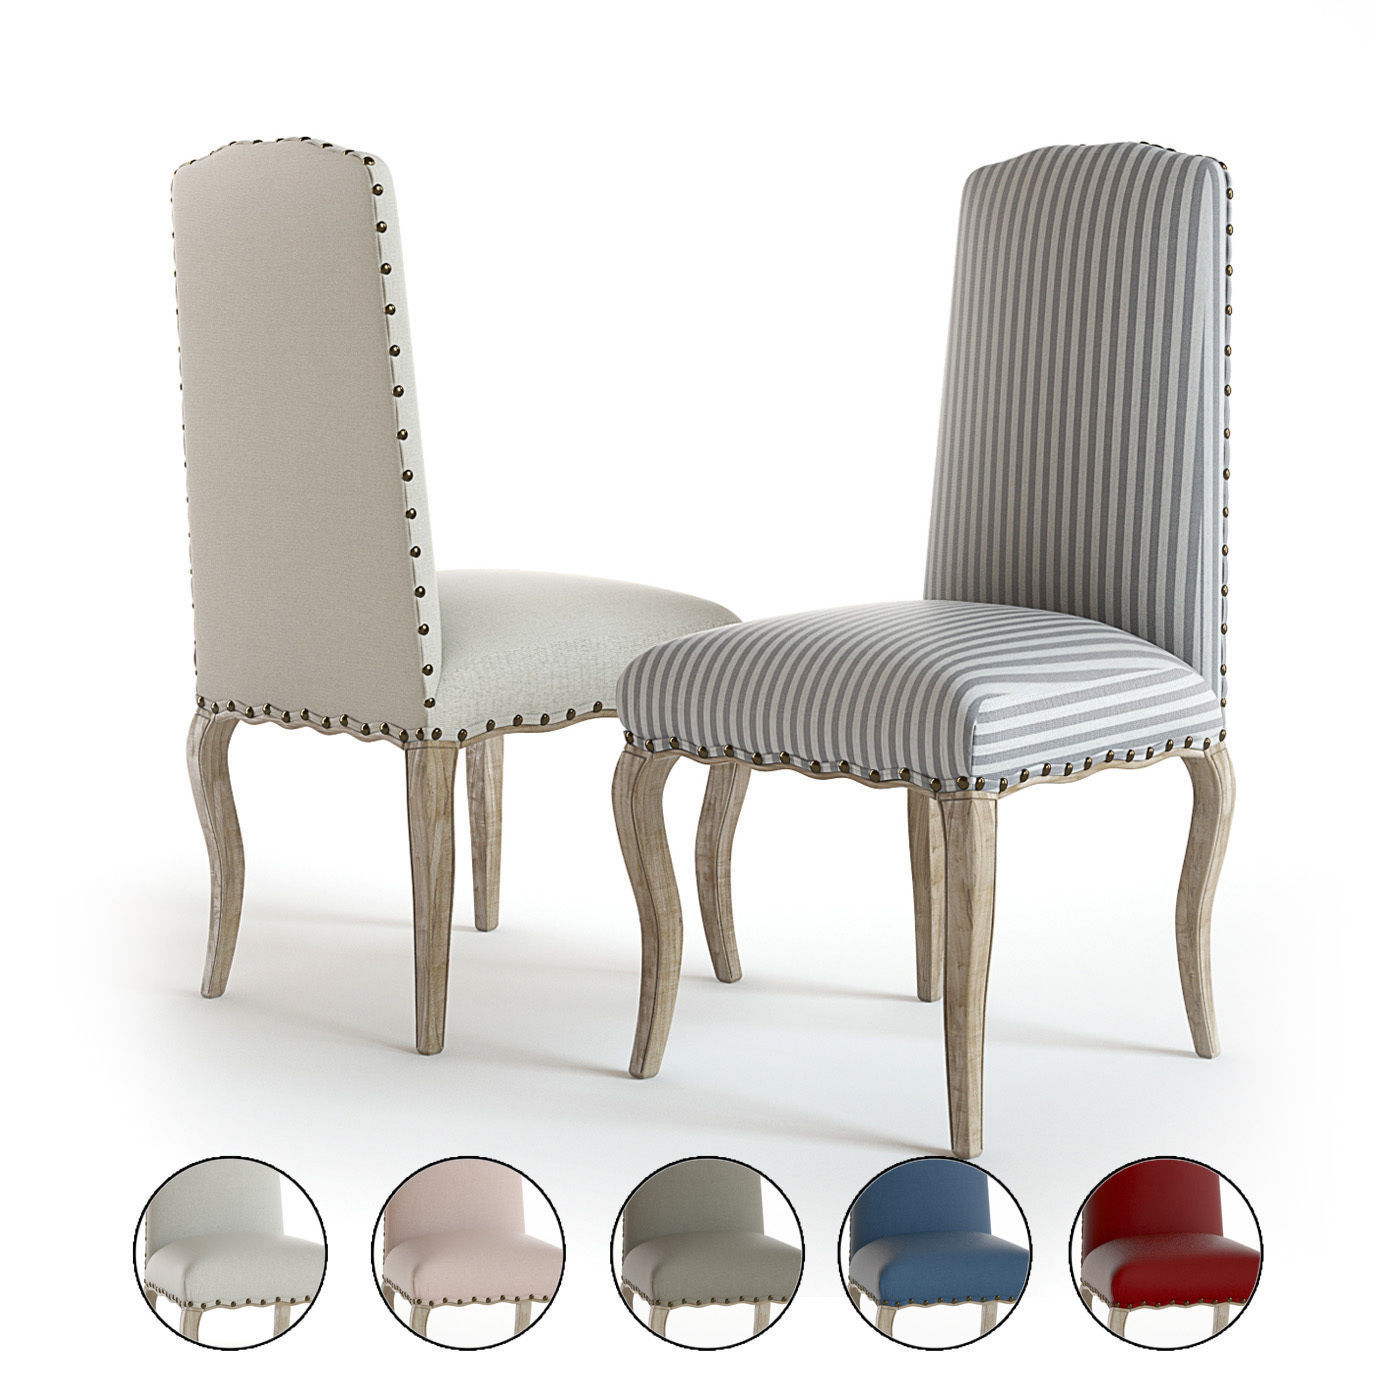 Pottery Barn - Calais dining chairs | 3D model